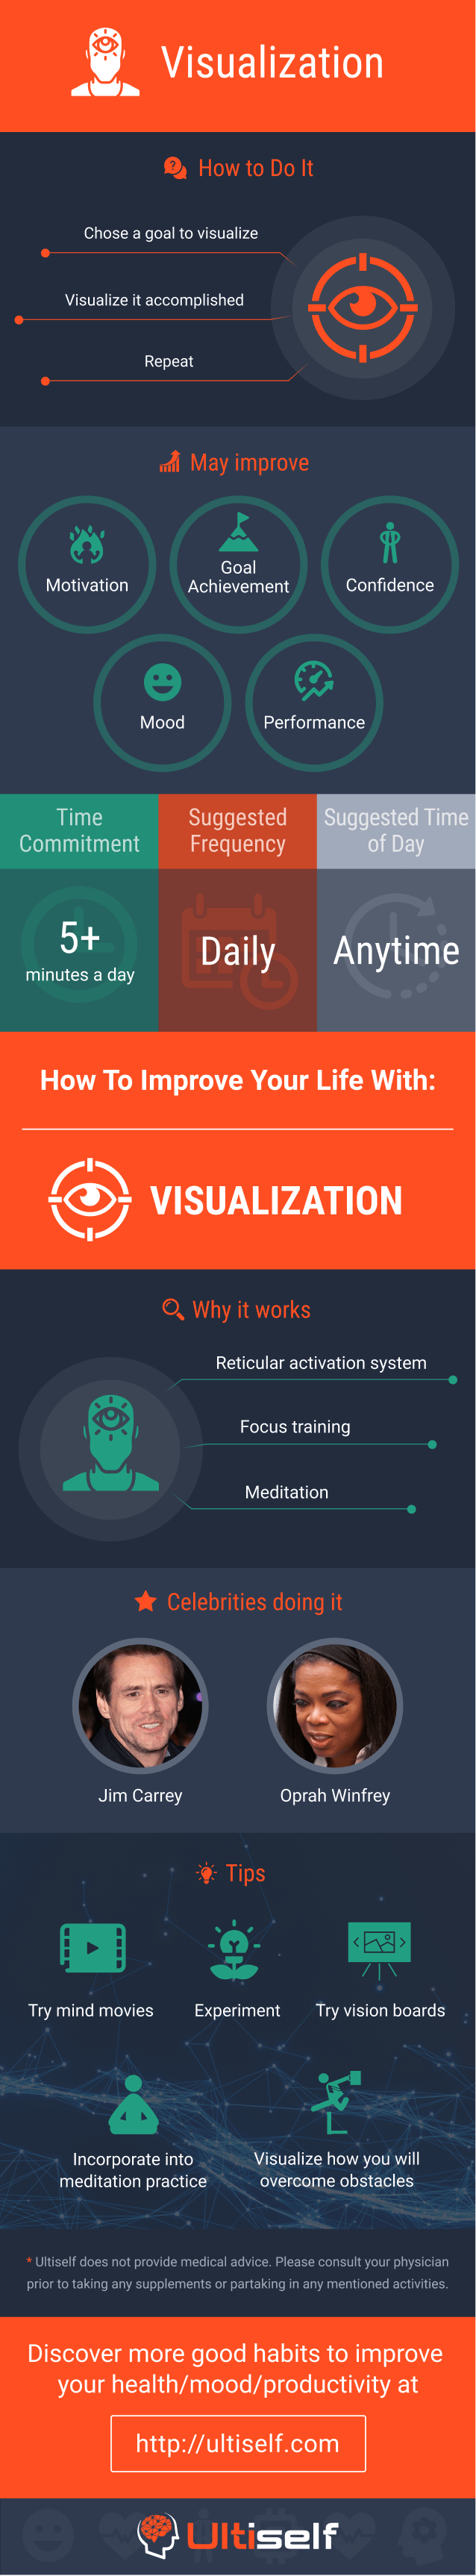 Visualization infographic